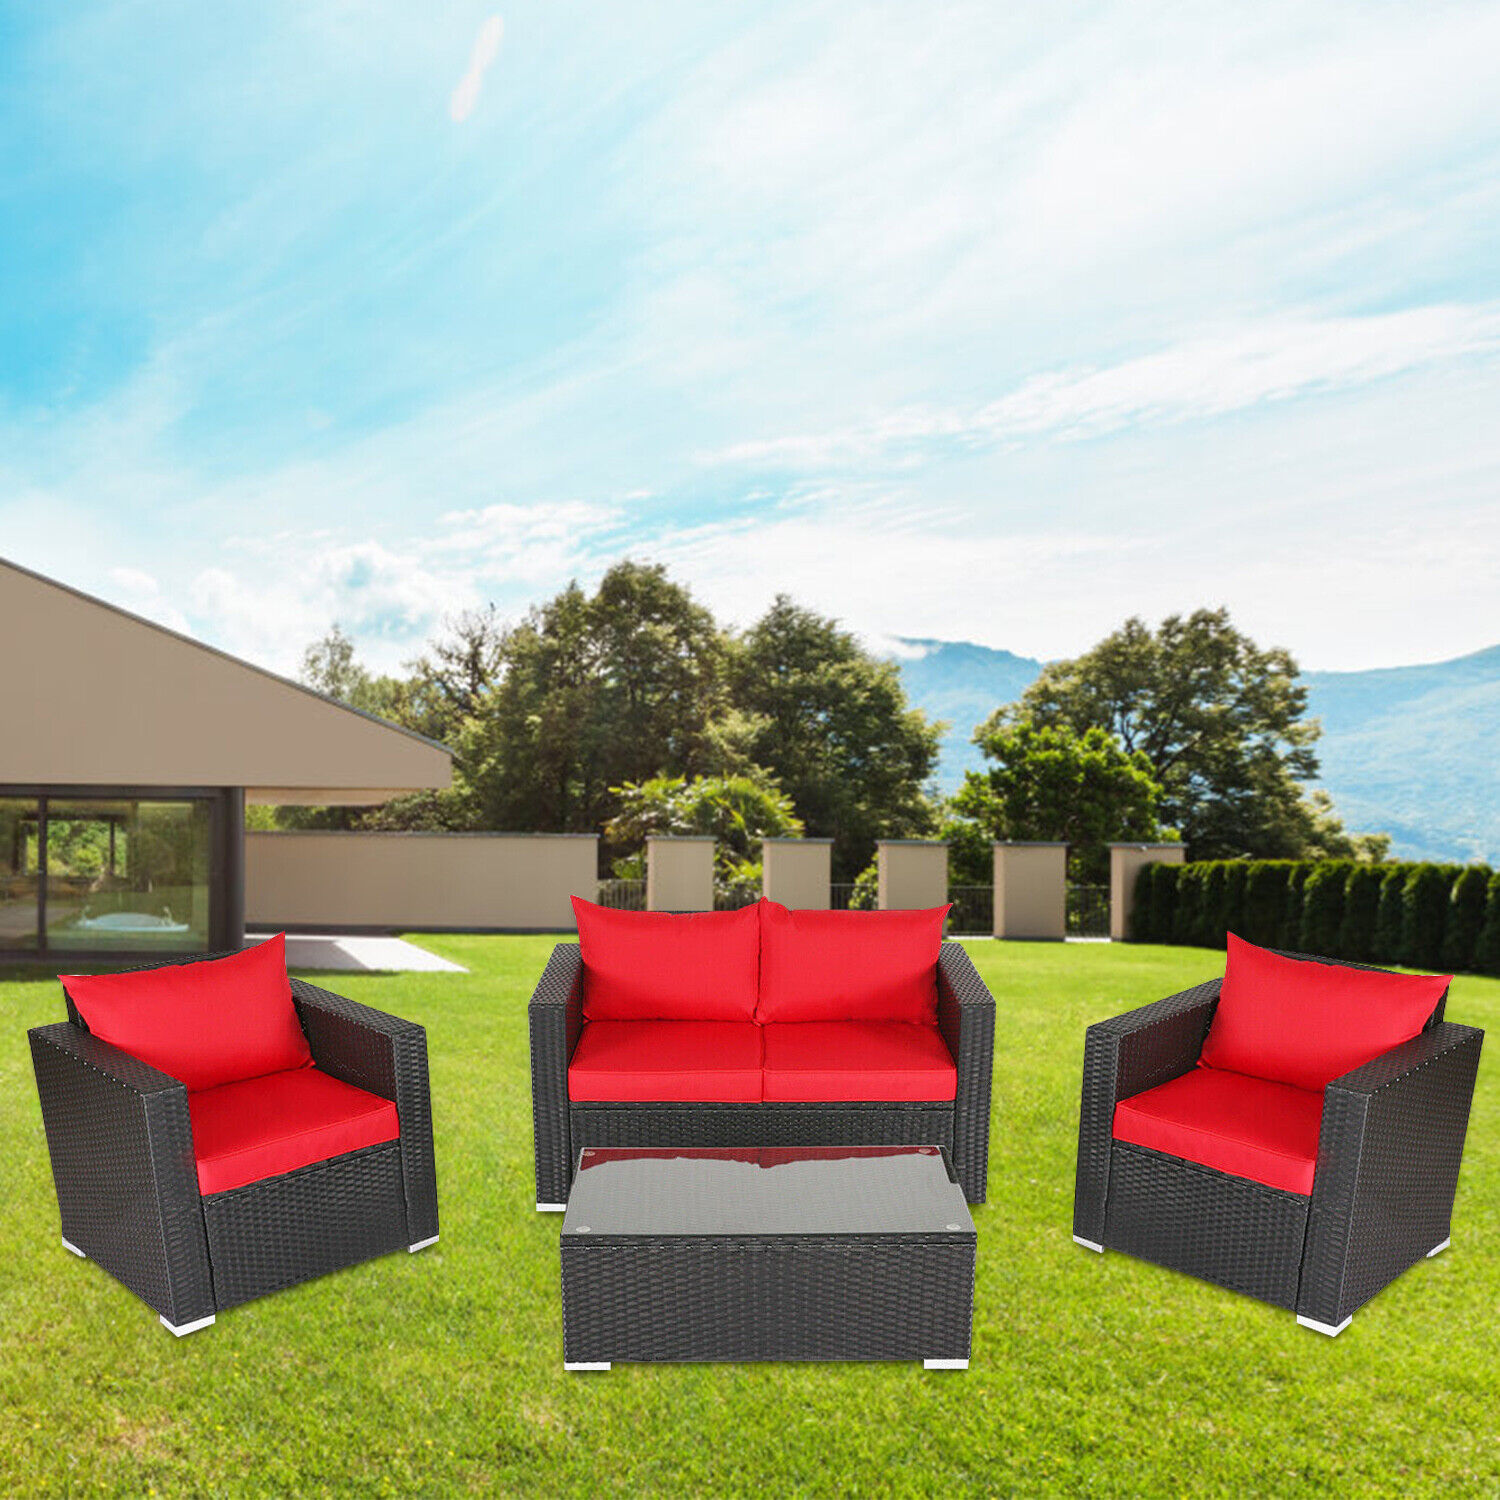 Garden Furniture - 4PC Outdoor Rattan Sofa Set Sectional Cushioned Couch Garden Patio Furniture